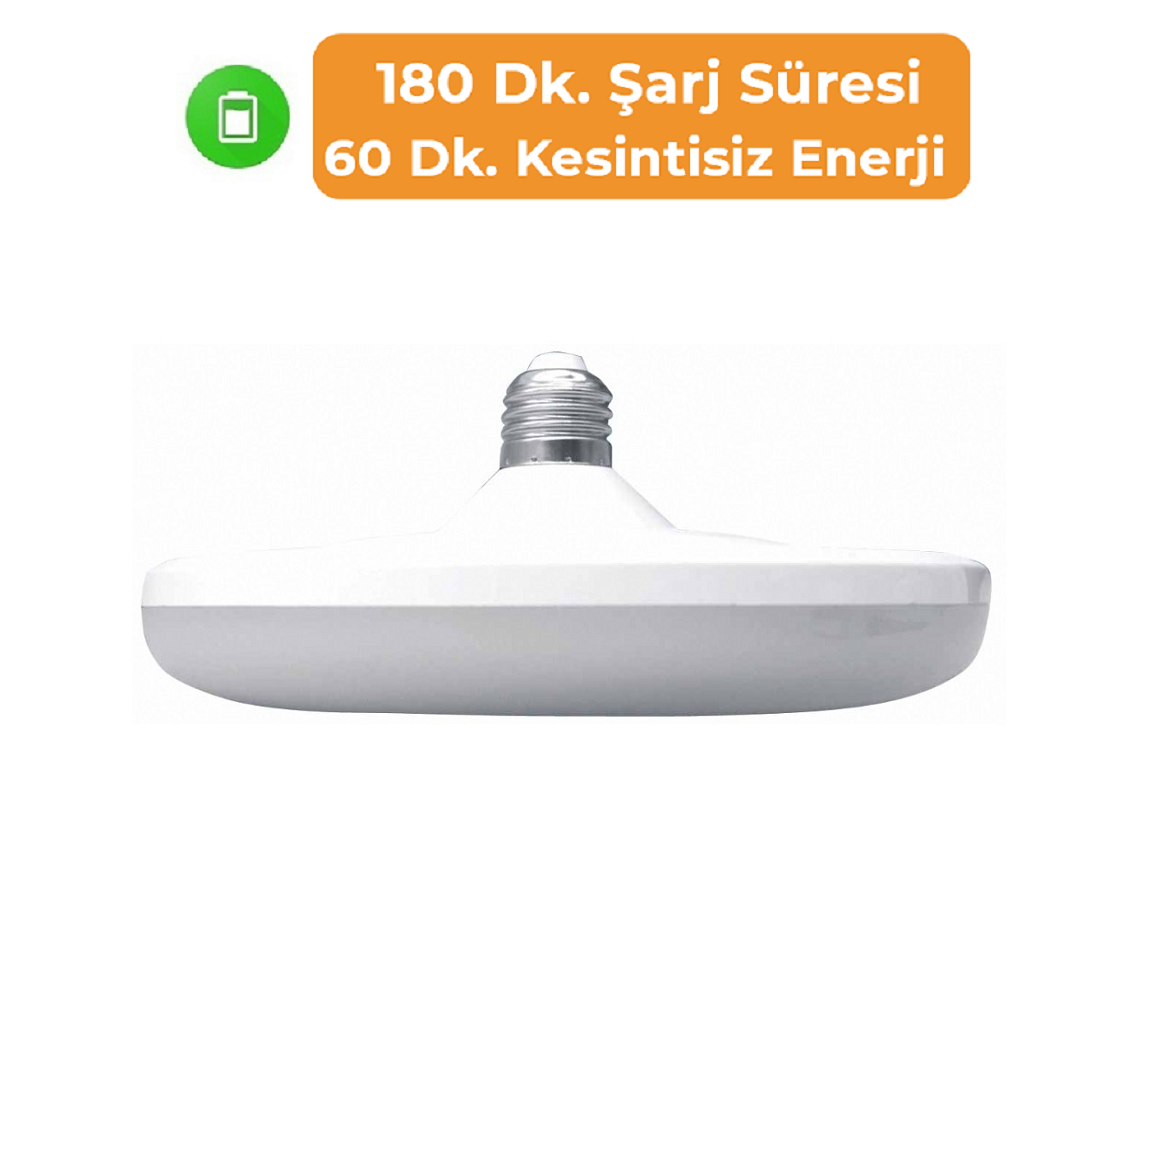 K2 GLOBAL KES408 - 26 Watt Şarjlı LED UFO Ampul